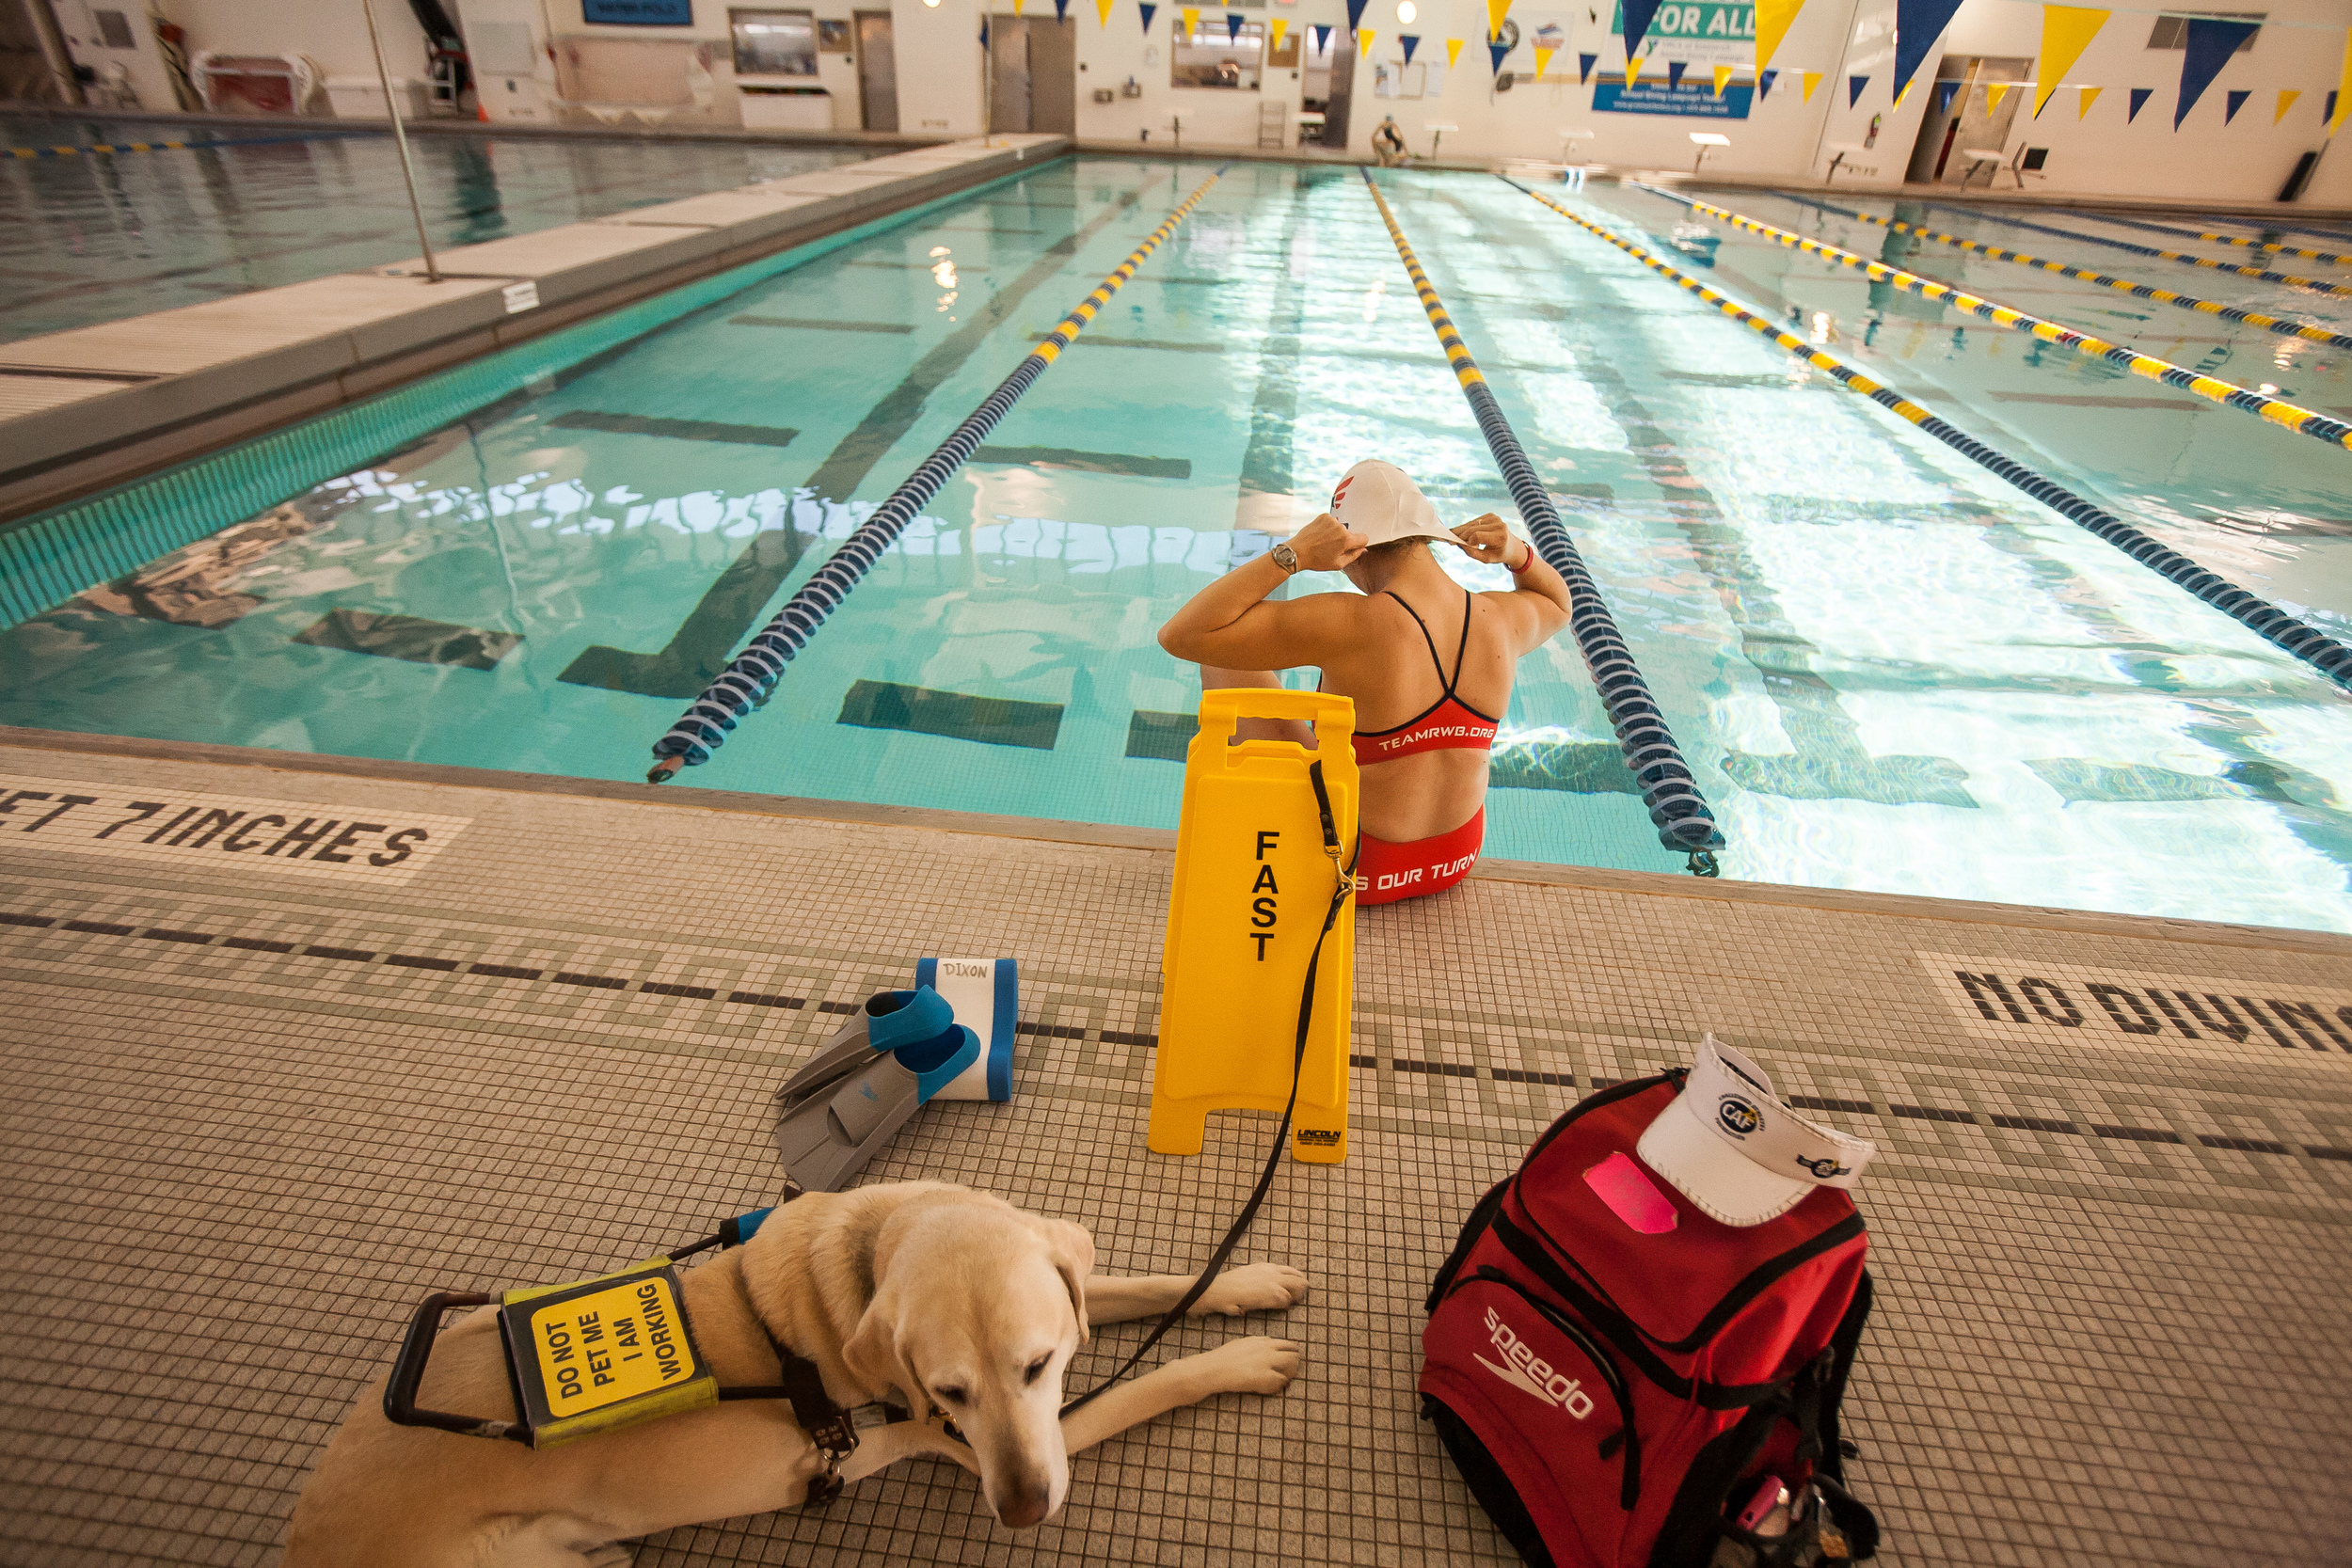 Amy Dixon, a visually impaired sommelier and triathlete, puts on her swim cap before a light swim workout at the YMCA at Greenwich in Greenwich, Connecticut, Thursday, Dec. 12, 2013. Her Guiding Eyes for the Blind guide dog Elvis stays close by.